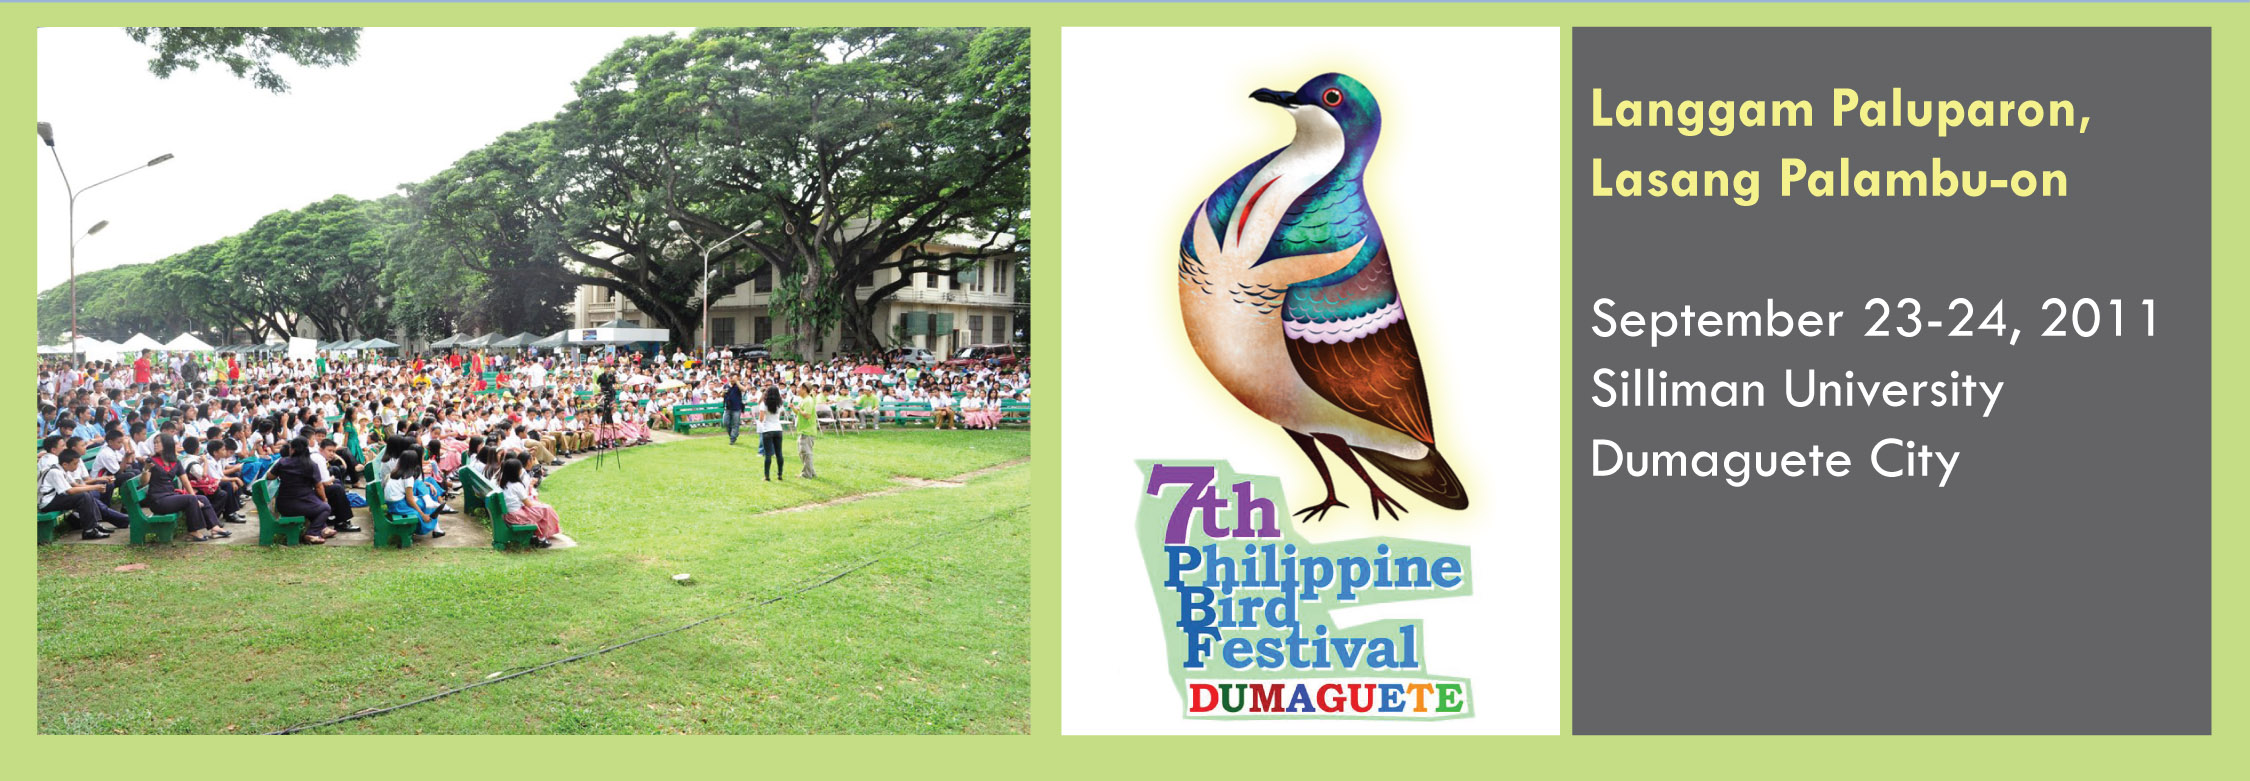 7th Philippine Bird Festival